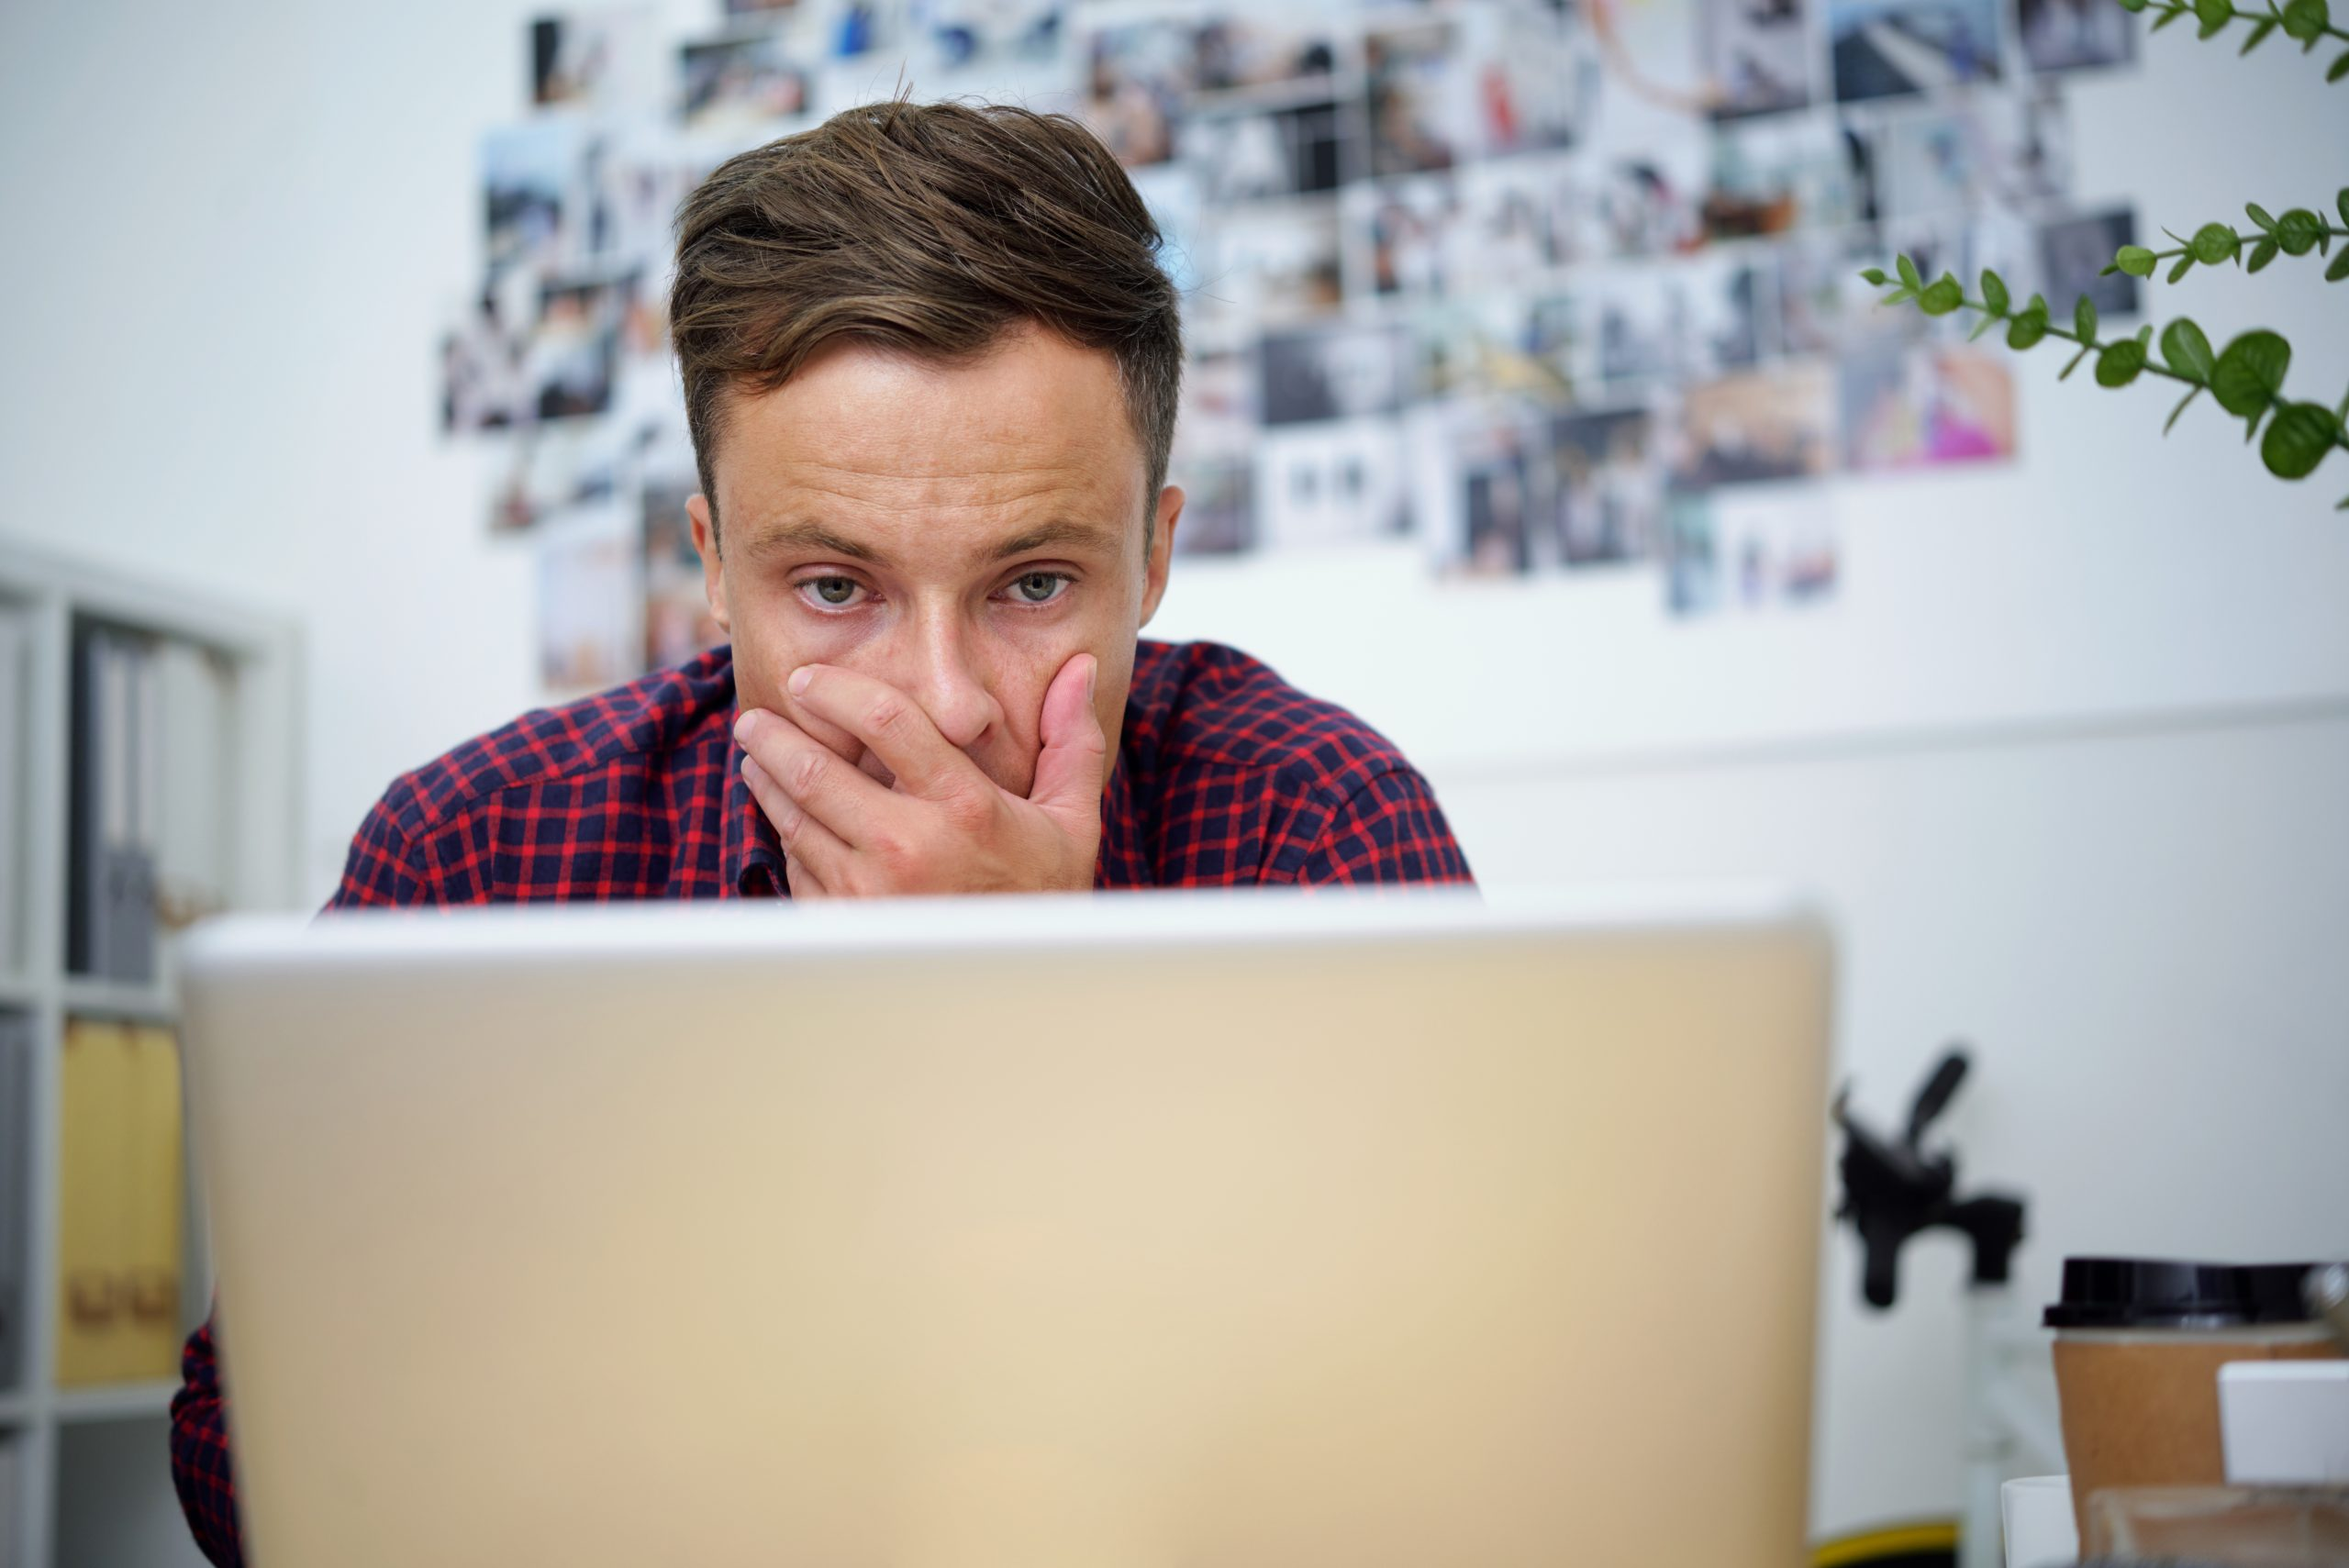 Image of a man looking frustrated worried about his business